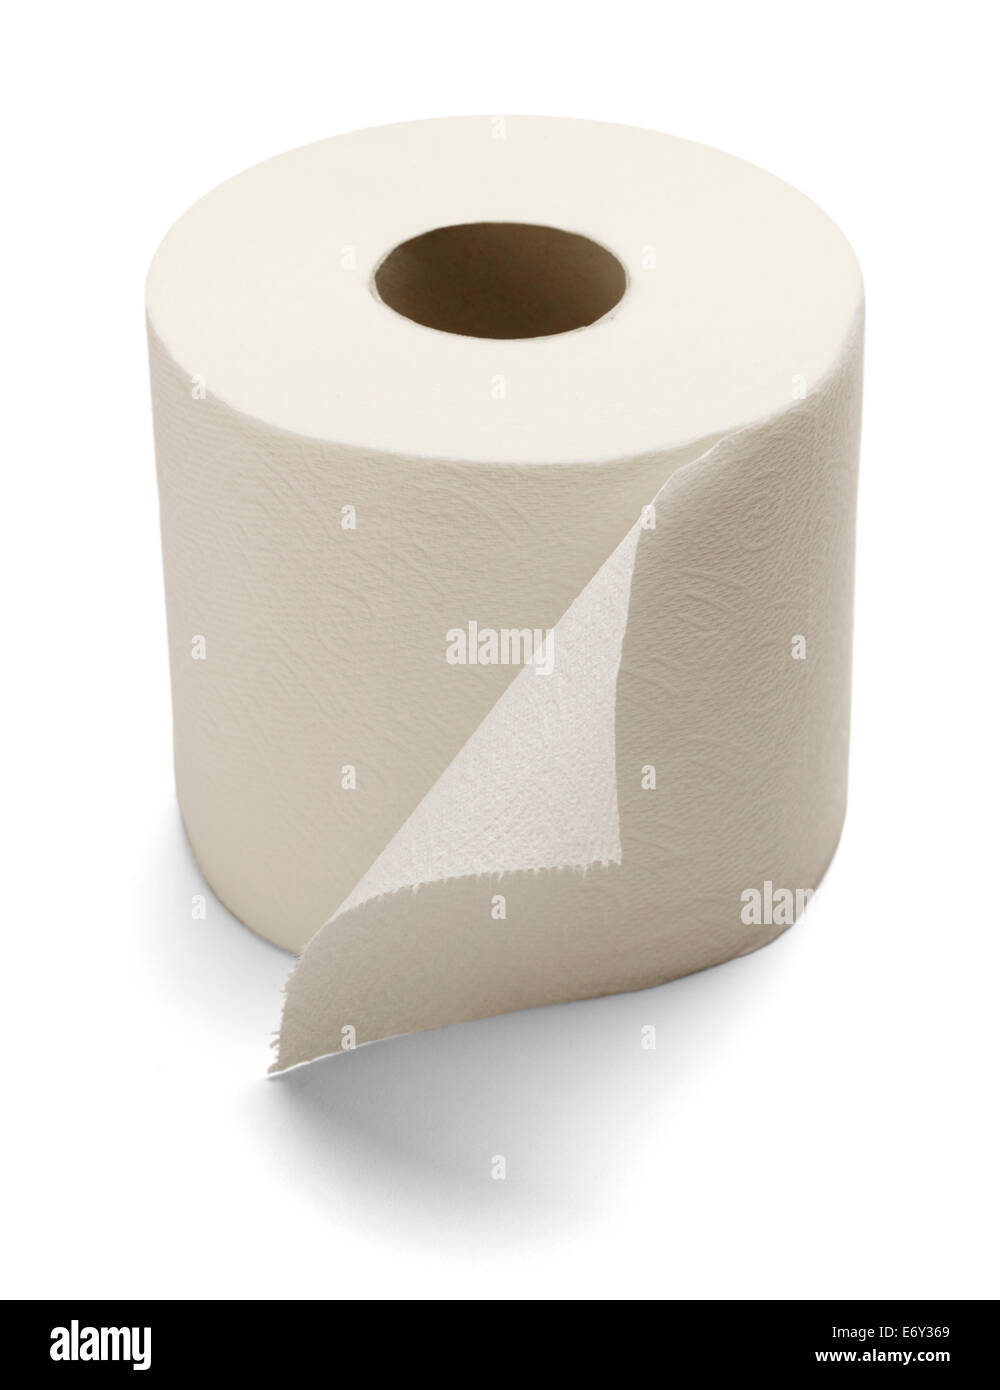 Soft Toilet Paper Isolated on a white background. - Stock Image